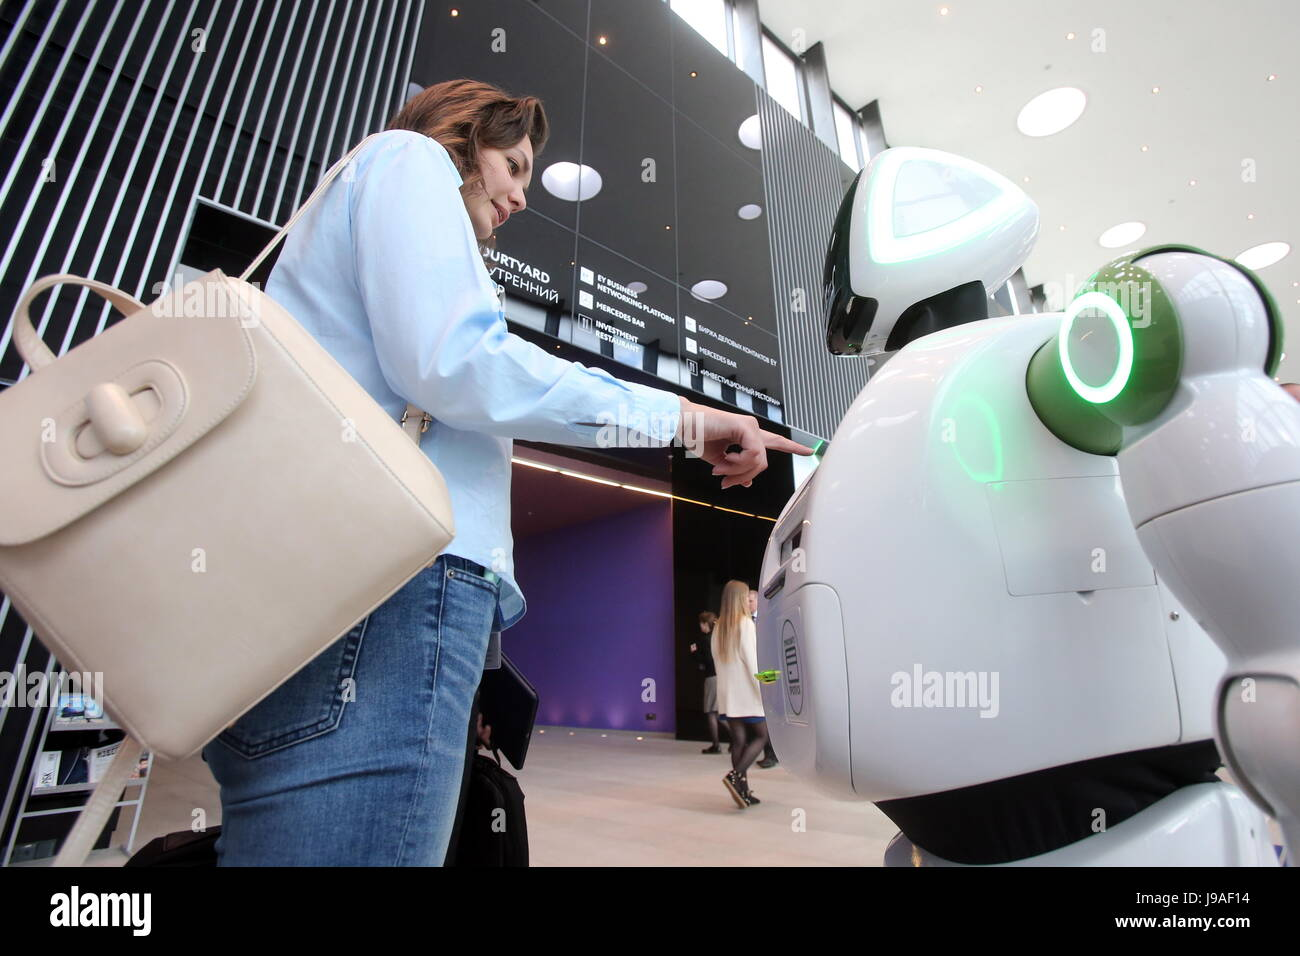 St Petersburg, Russland. 1. Juni 2017. Ein Roboter auf 2017 St.Petersburg International Economic Forum [SPIEF 2017] Stockbild